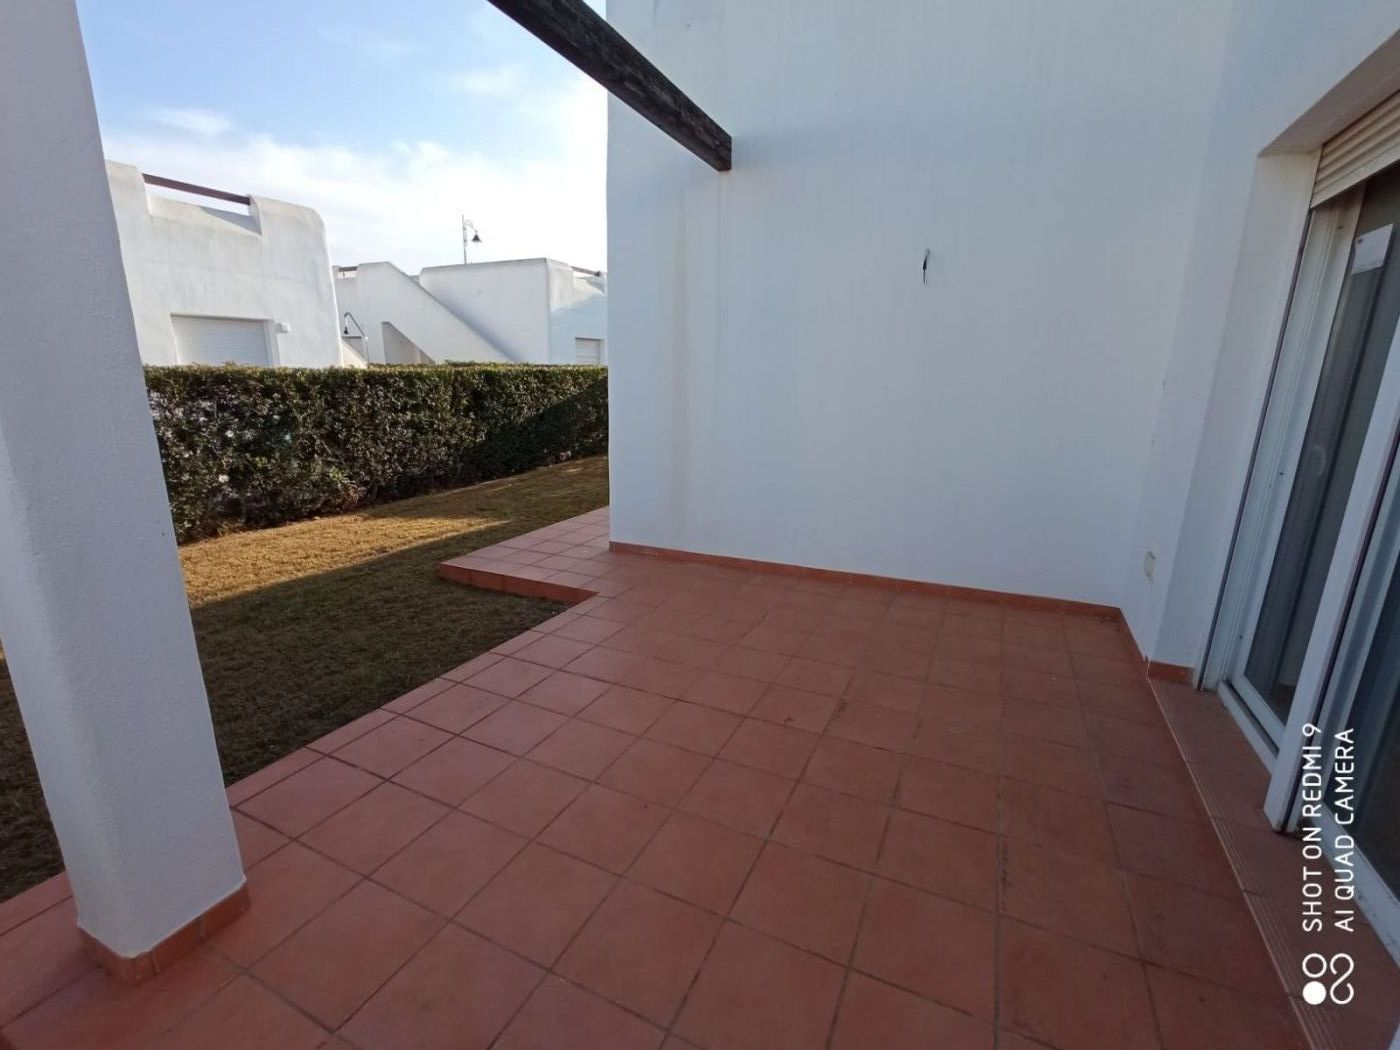 Gallery Image 6 of Villa Jana in need of some TLC for sale at bargain price